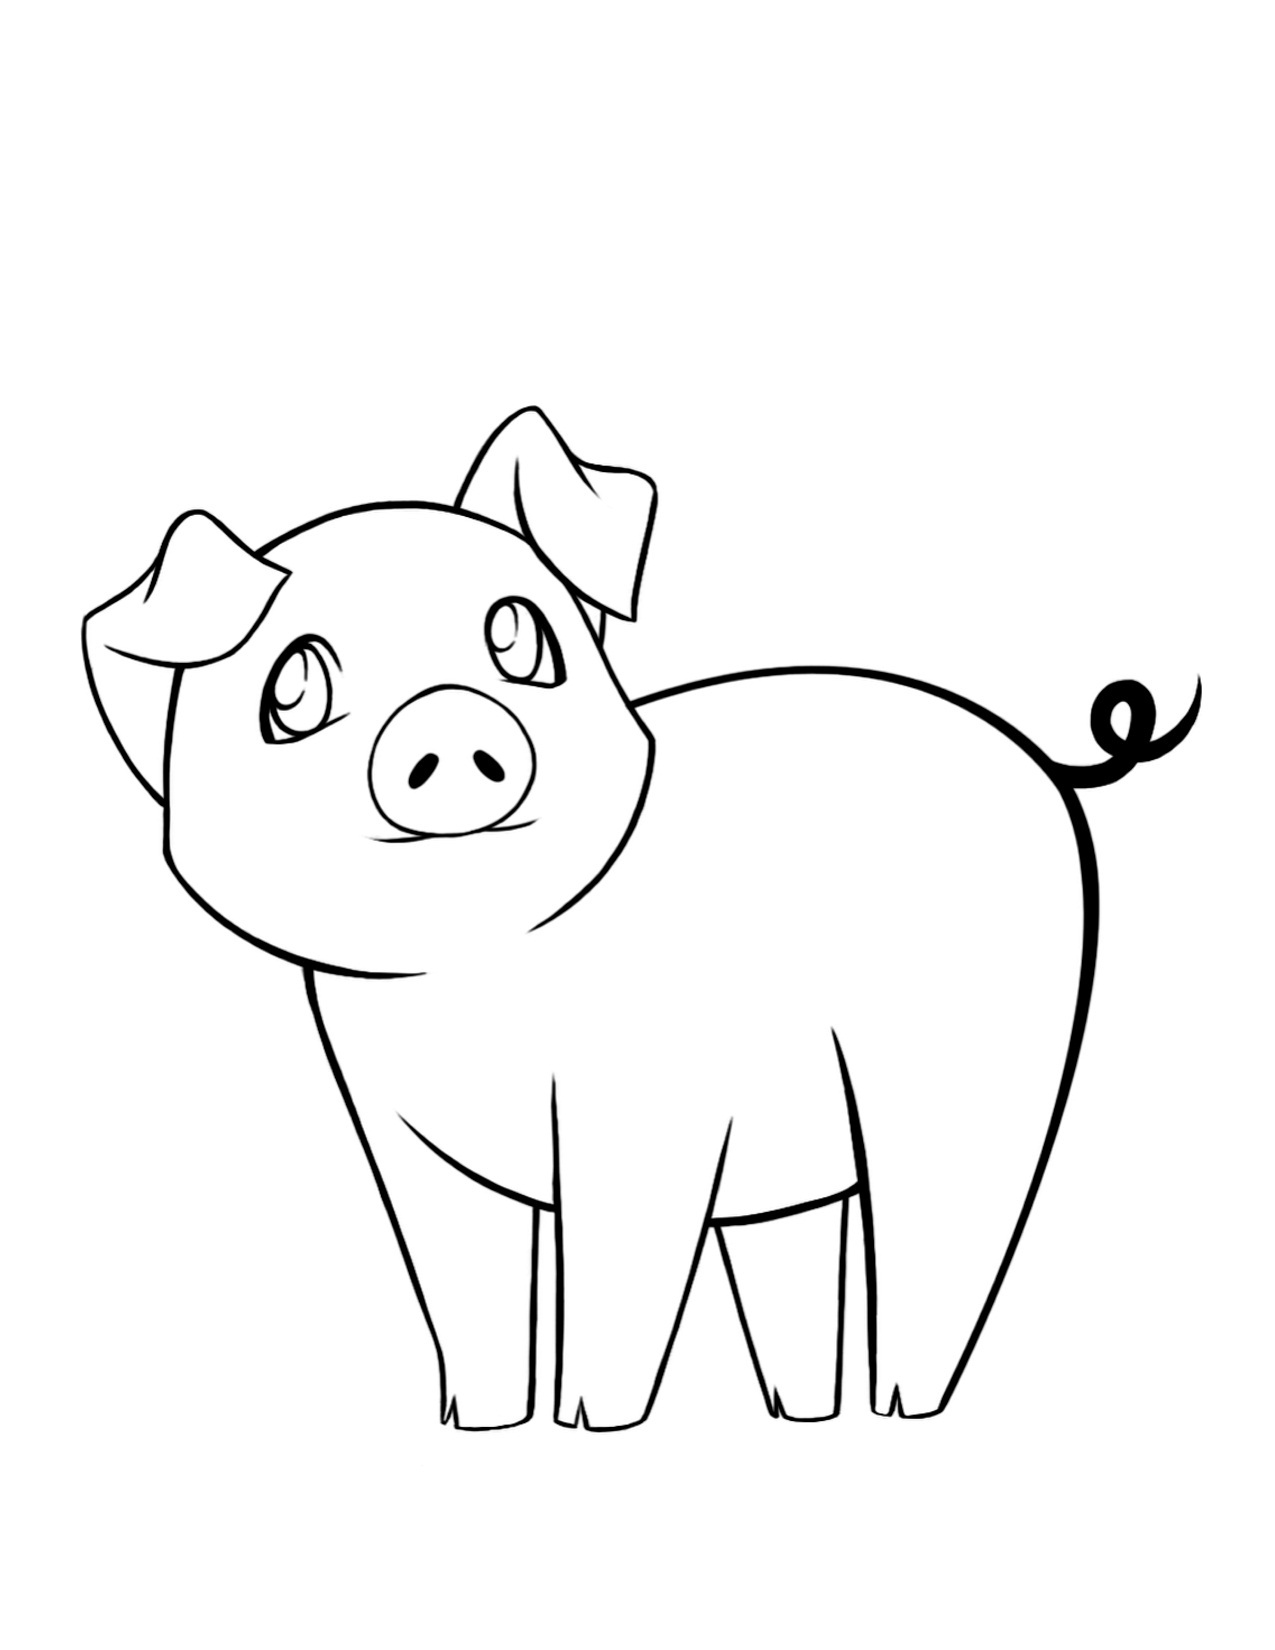 coloring pig pictures 70 animal colouring pages free download print free pig coloring pictures